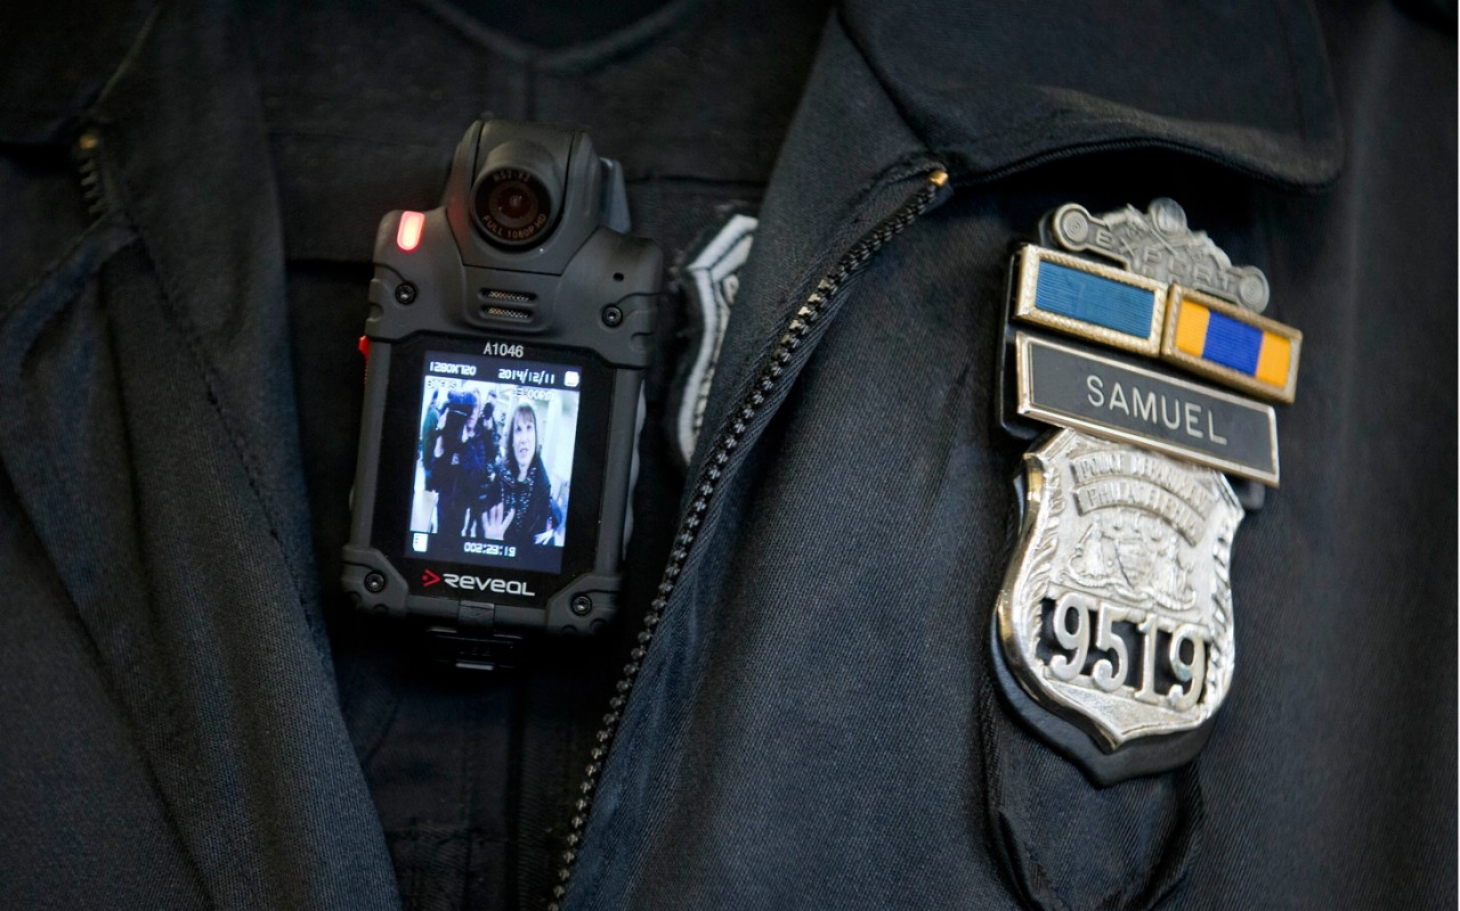 an argument in favor of policemen wearing body cameras to reduce claims and improve peoples trust ةدايقلا ناكرأthe principles of leadership the principles of leadershipindb 1 6/13/11 an enhancement and a favor, and peoples' trust in.